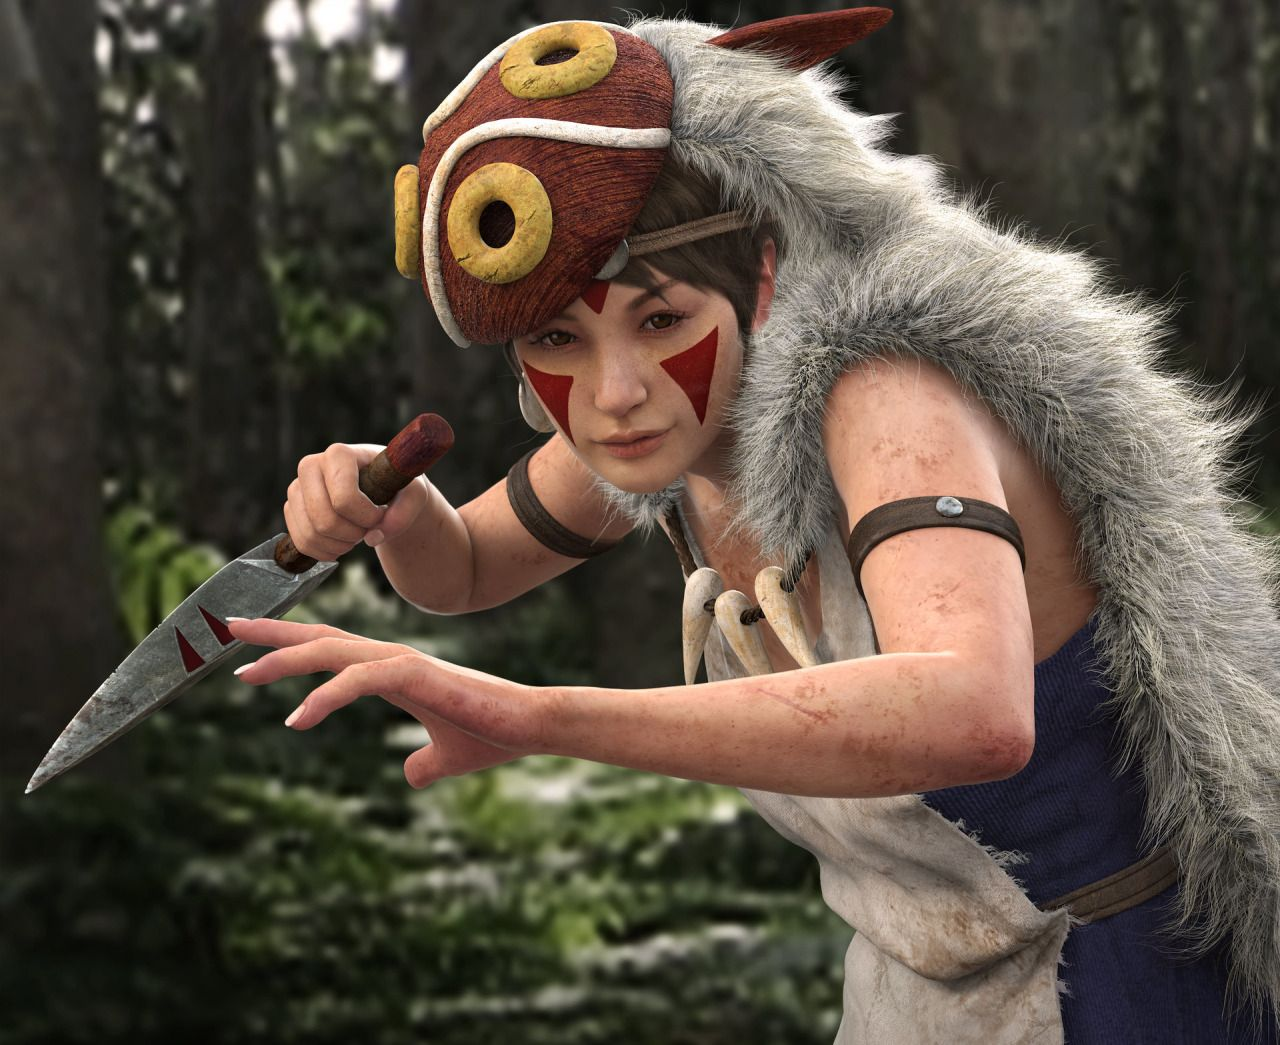 Princess Mononoke, created by Ho-young Kim using 3ds Max, BodyPaint, ZBrush and Unfold 3D